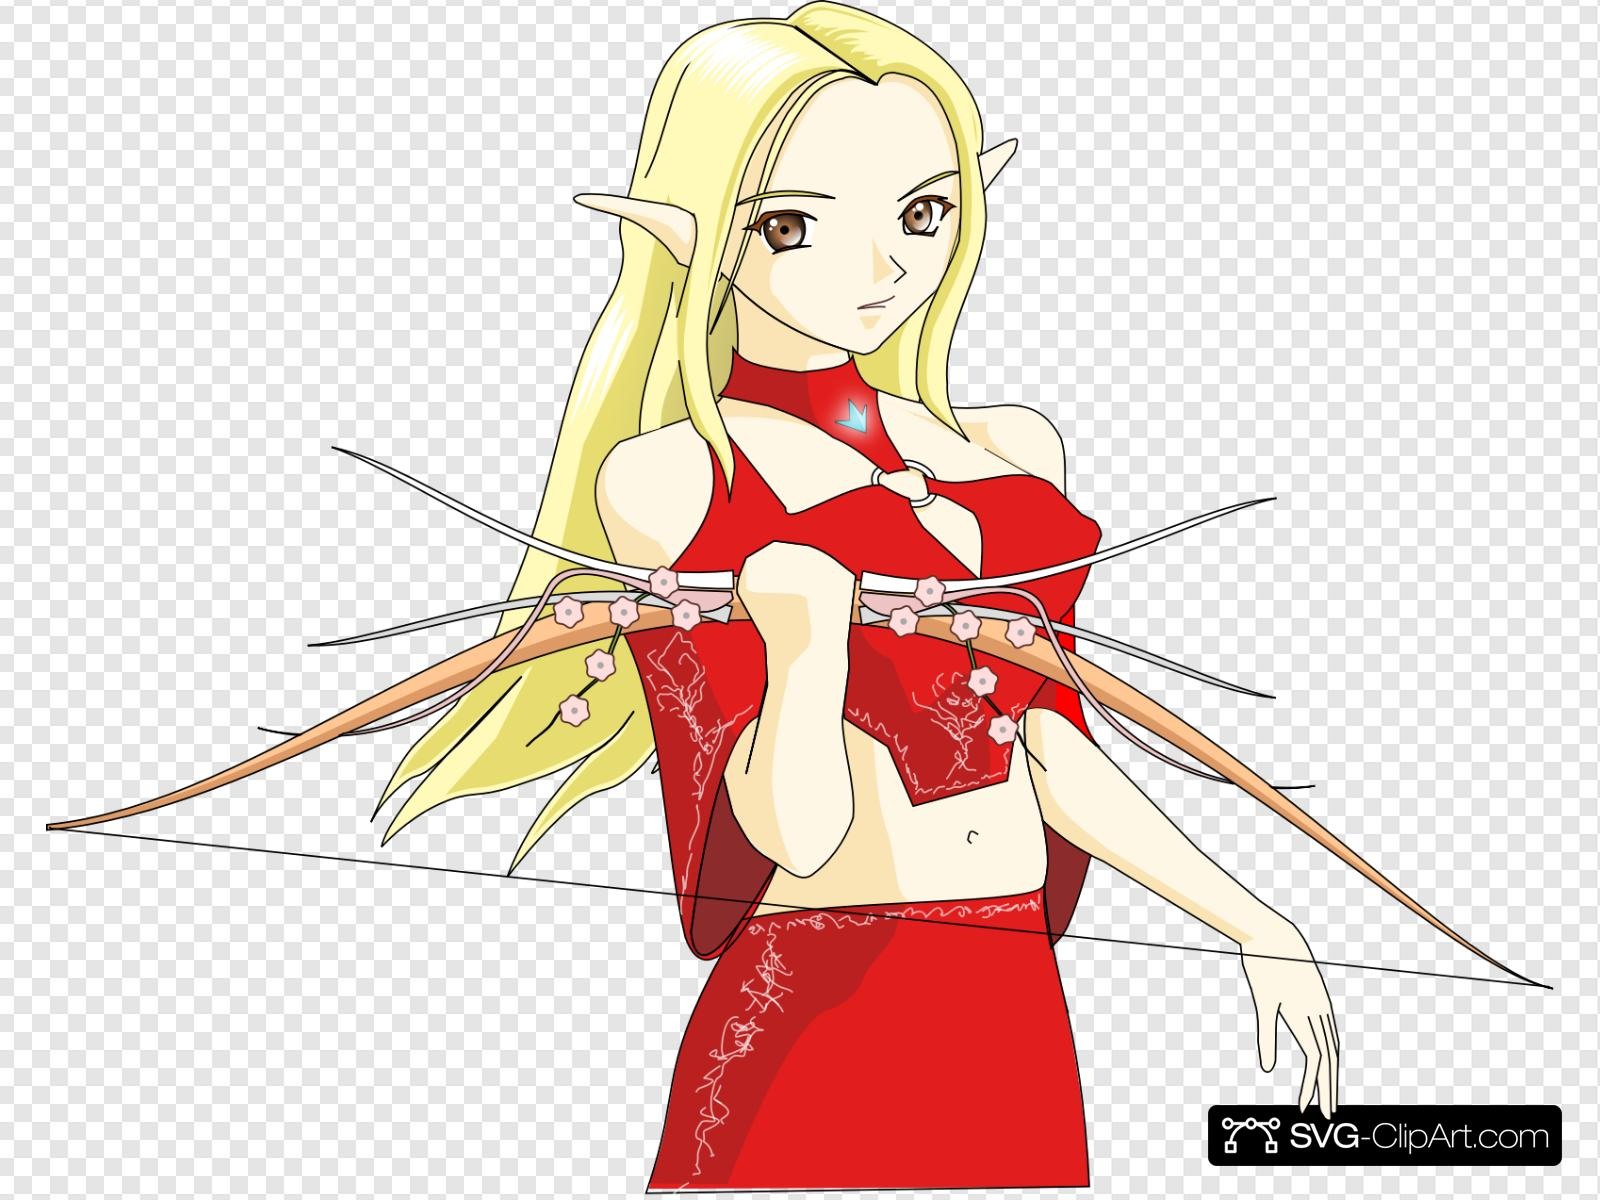 Anime Elf Archer Clip art, Icon and SVG.